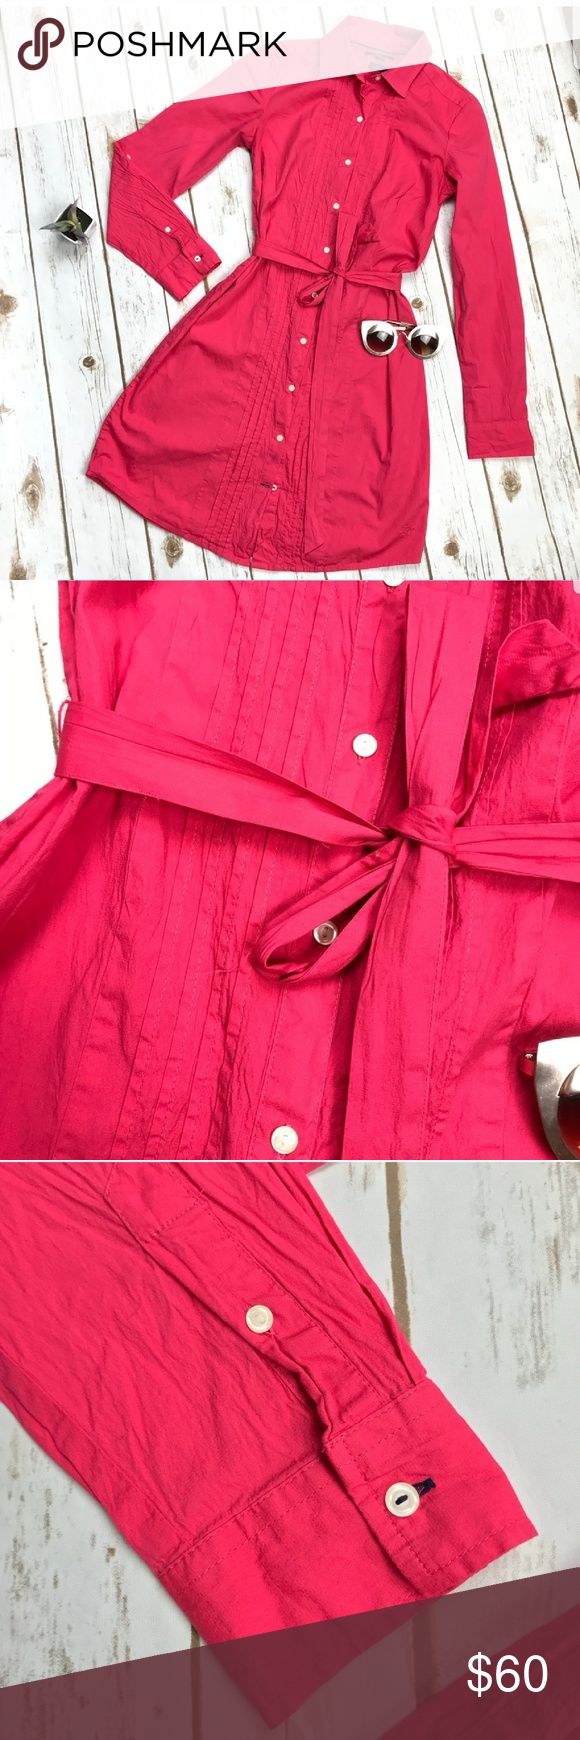 Tommy Hilfiger Belted Stretchy Shirt Dress NWOT New Tommy Hilfiger stretch shirt dress with tie belt at waist. Coral color. Pleated design in front. Point collar. Rounded hem. Front button closure. Sleeves can roll up or leave down. 99% cotton, 1% elastane. After I bought it, I noticed a small hole in back, so I put a cute butterfly patch on it which adds a little color flare. Tommy Hilfiger Dresses